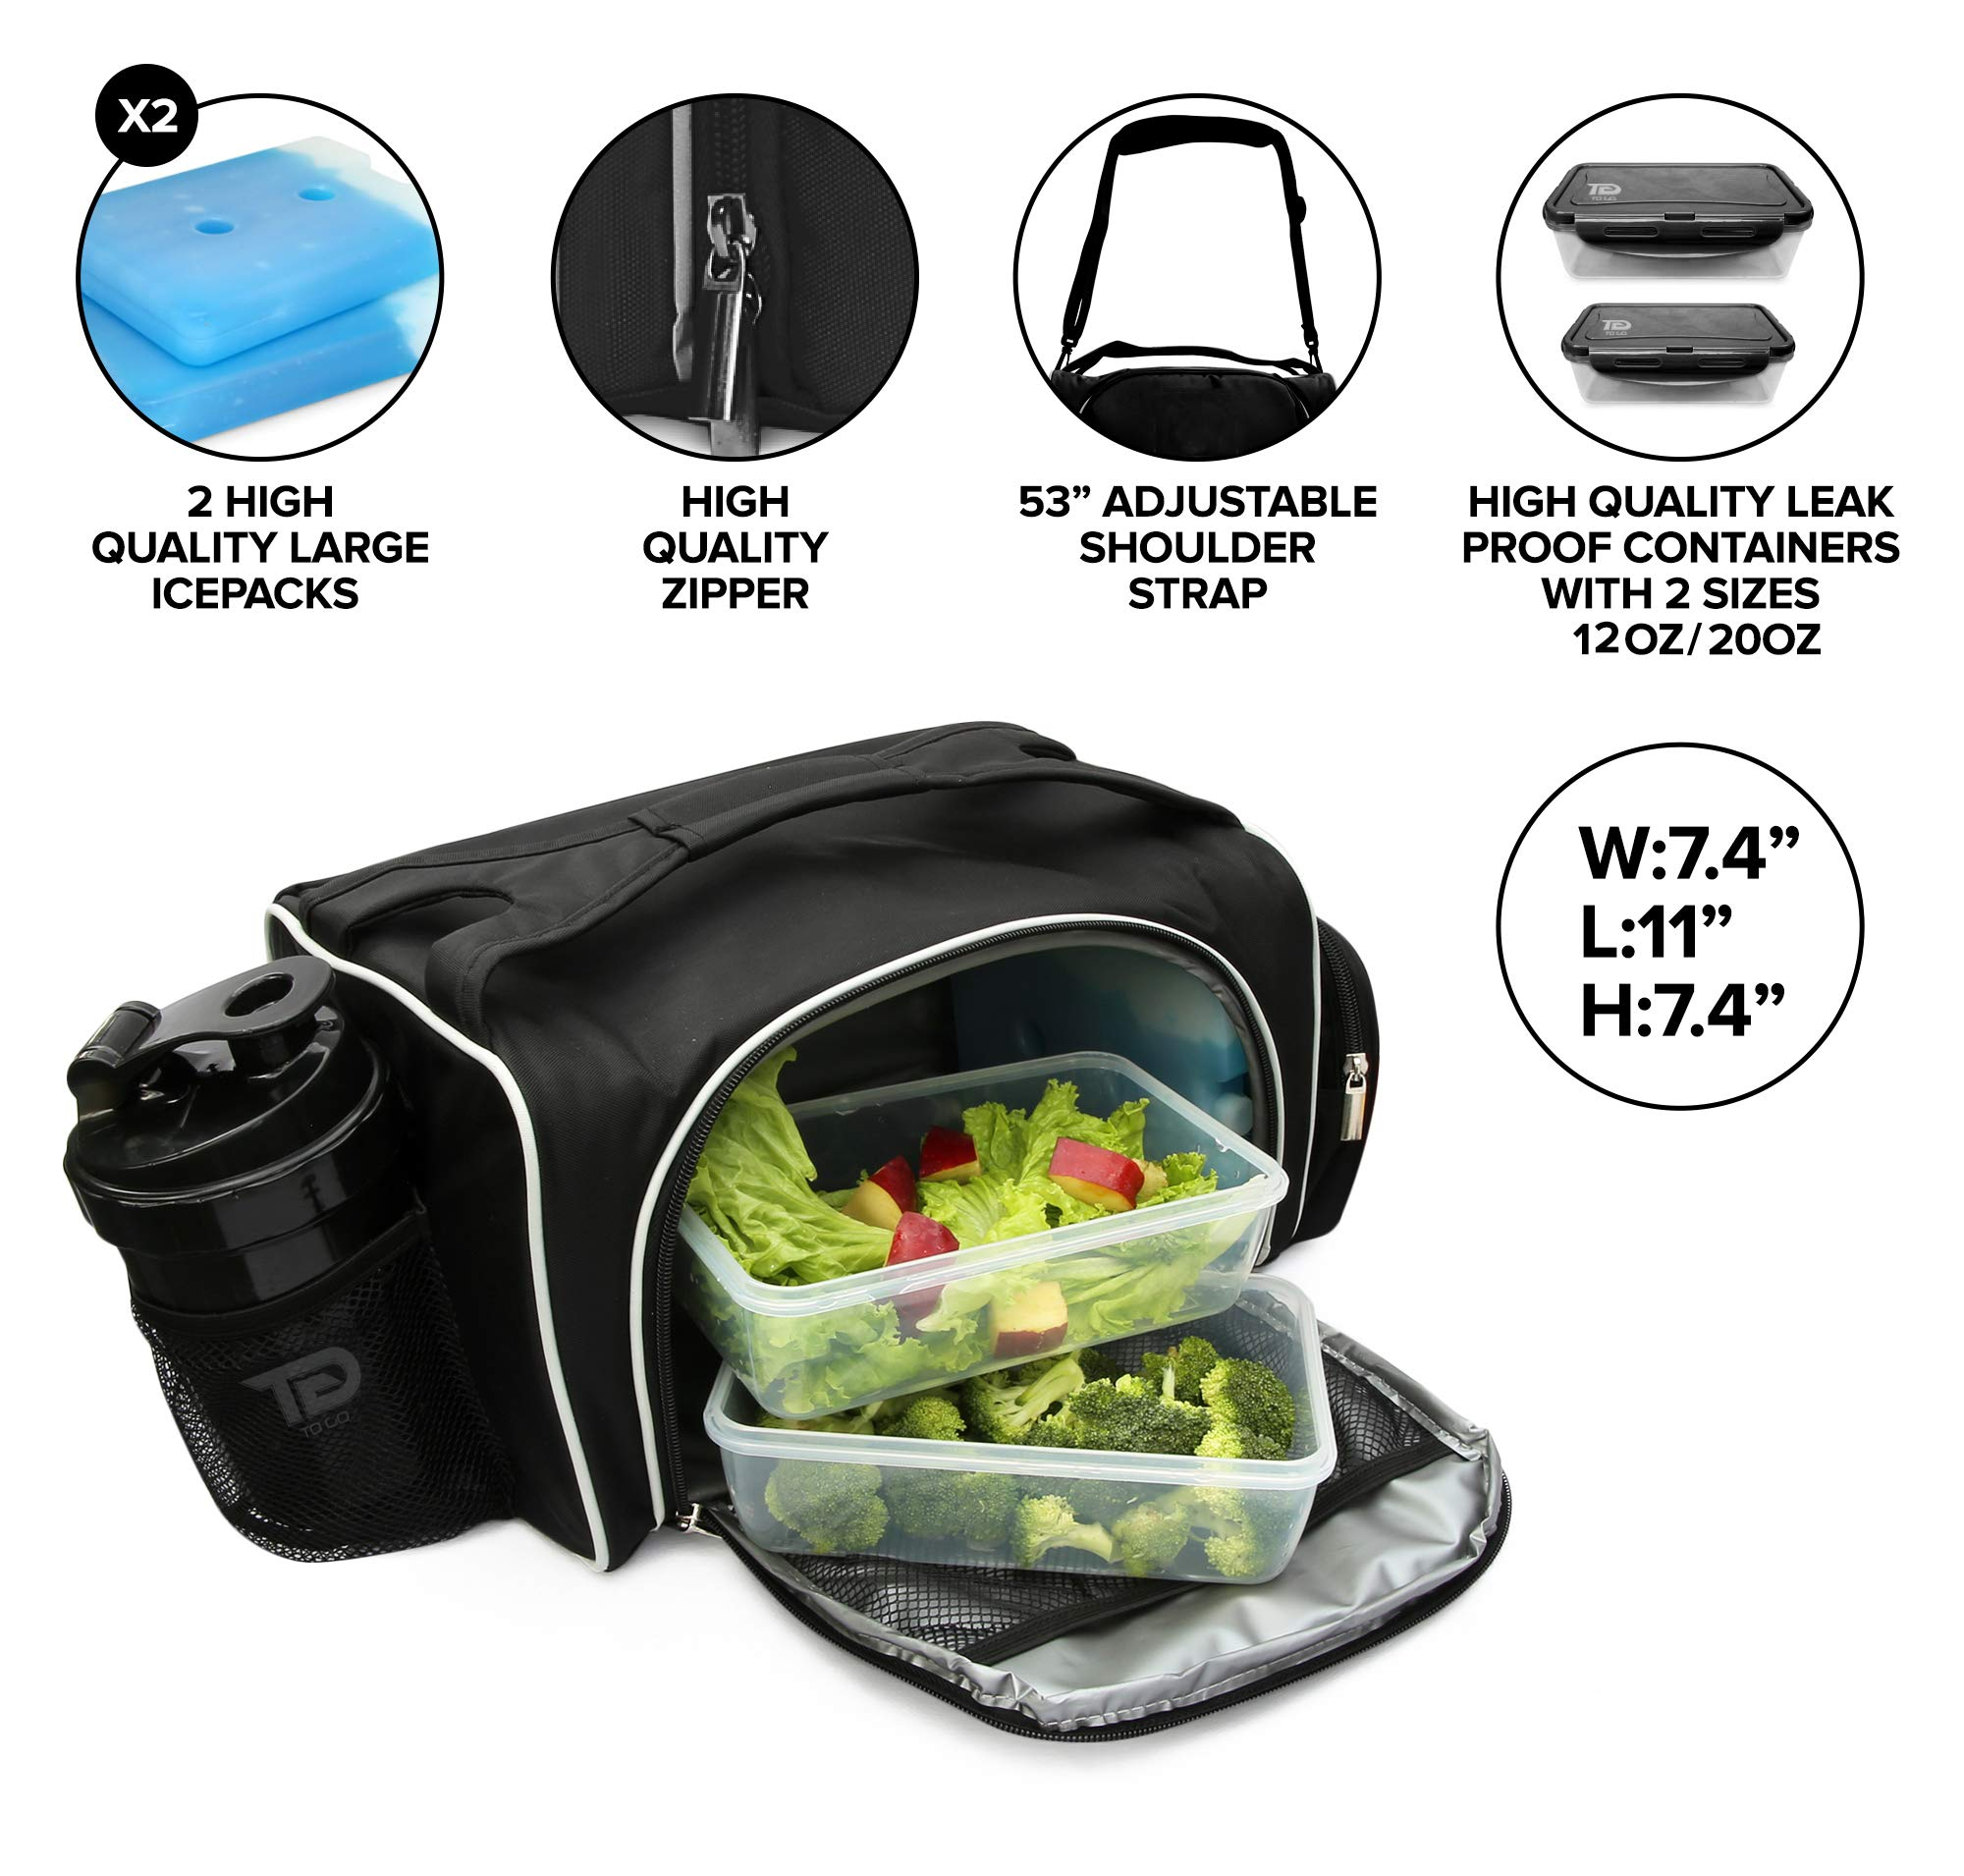 Meal Prep Bag By TO GO Insulated Lunch Meals Bag W/6 Portion Control Containers,2 ICE PACKS, Shaker, Pill Box,With an Adjustable shoulder. bag for meals (Black/new) by TO GO (Image #4)